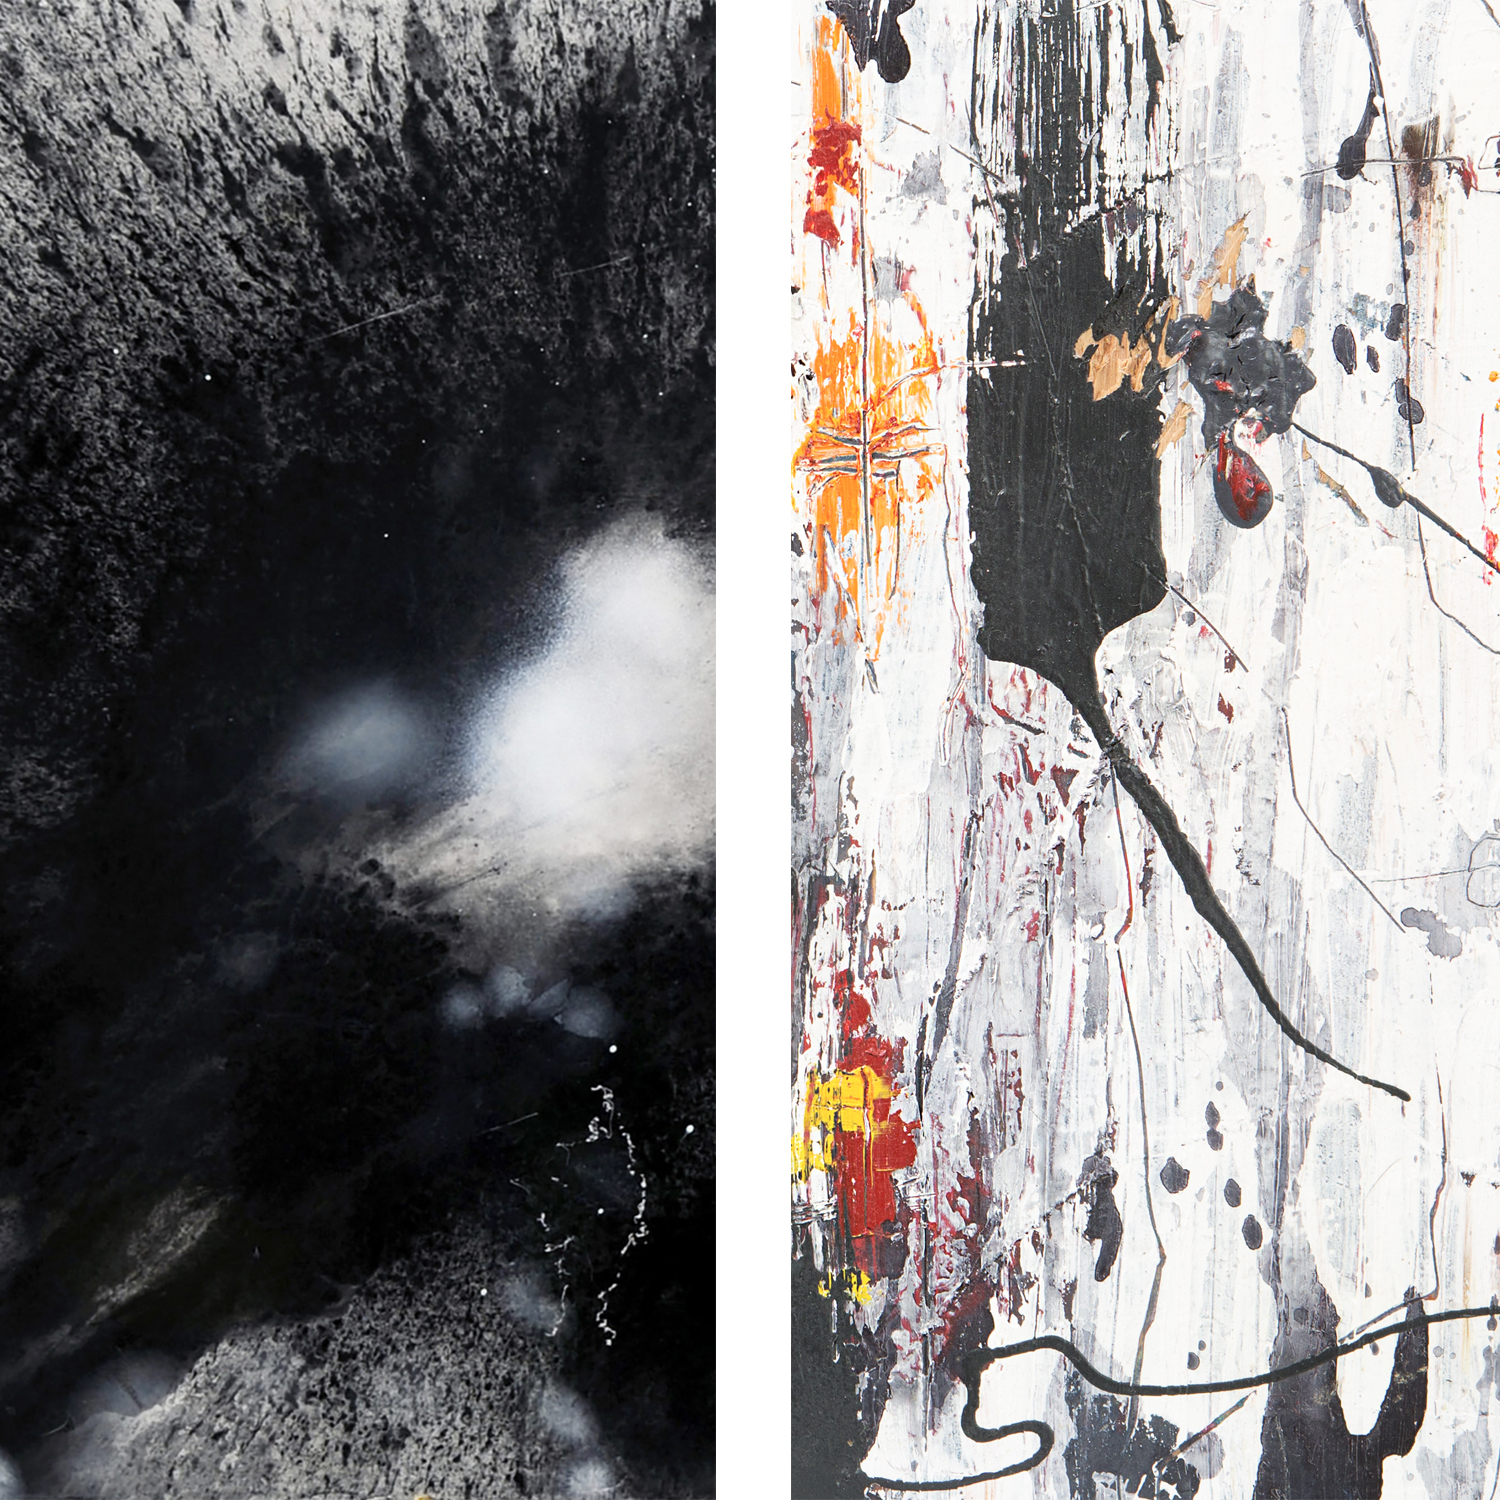 """Portion of """"Untitled I"""" by Joe Reich (left) and portion of """"Common Scars Brought Us Together"""" by Chris Trejo (right)"""